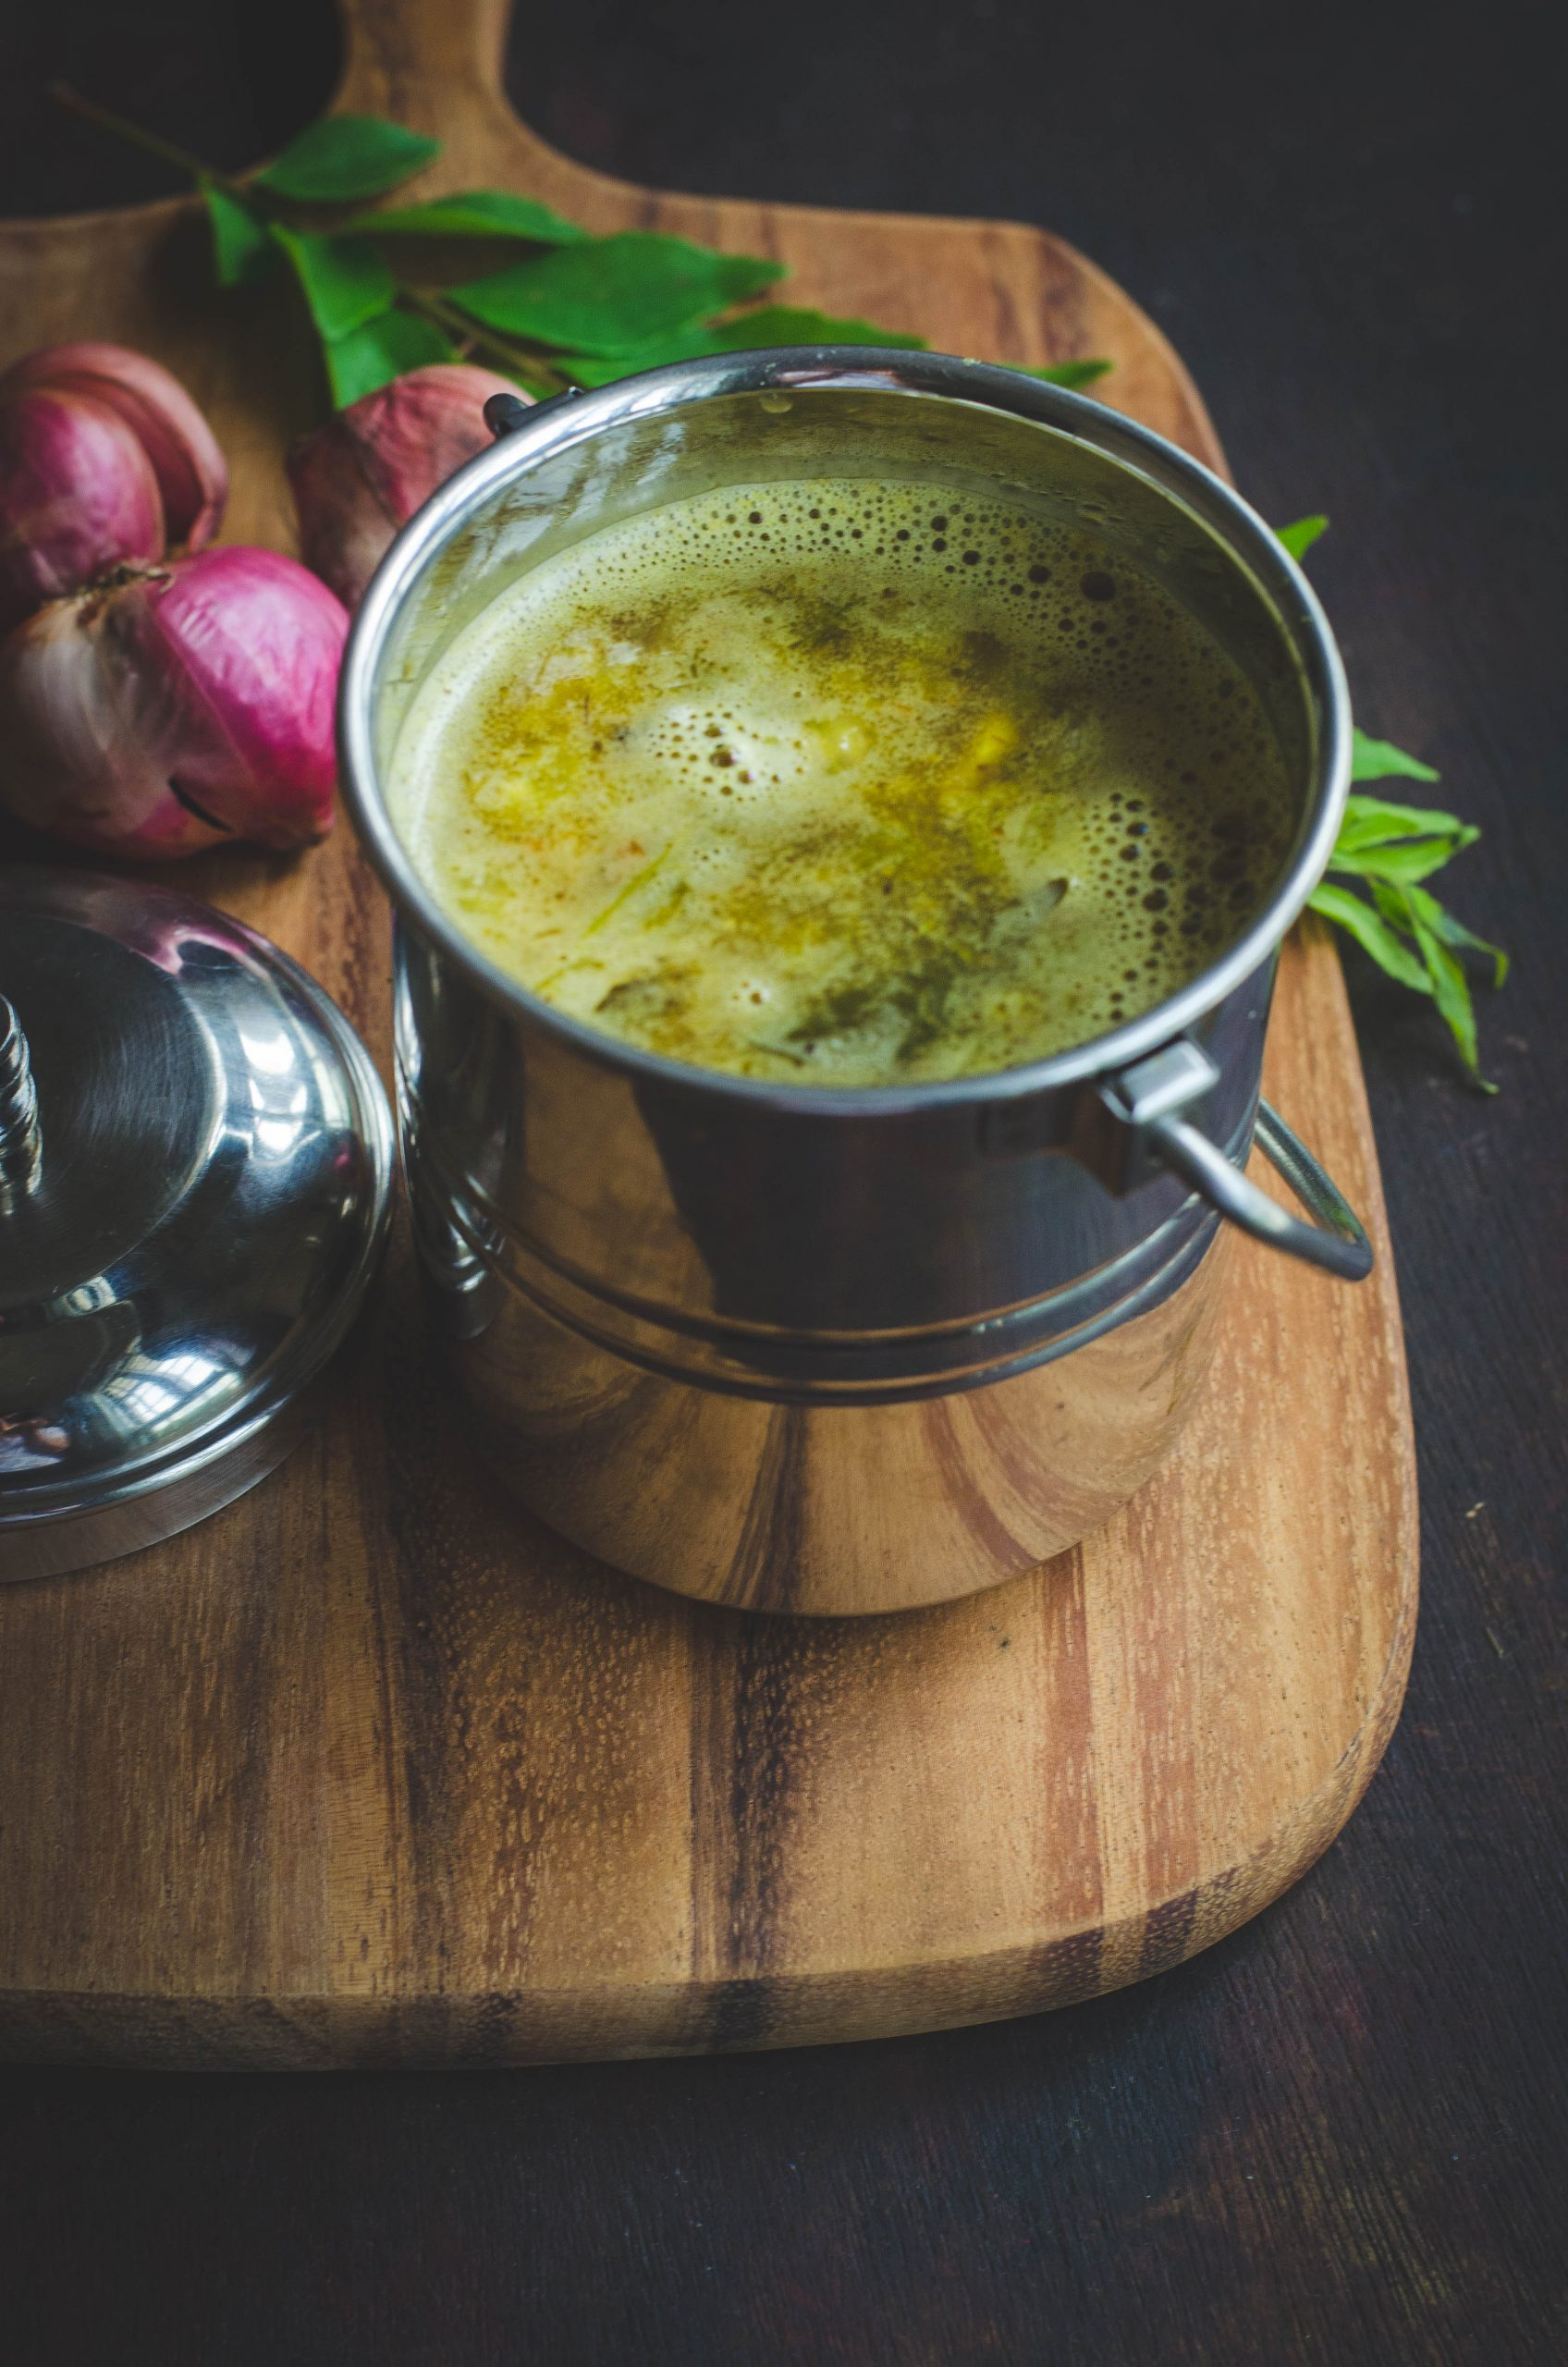 Onion rasam served in a stainless steel handled container placed on a wooden board